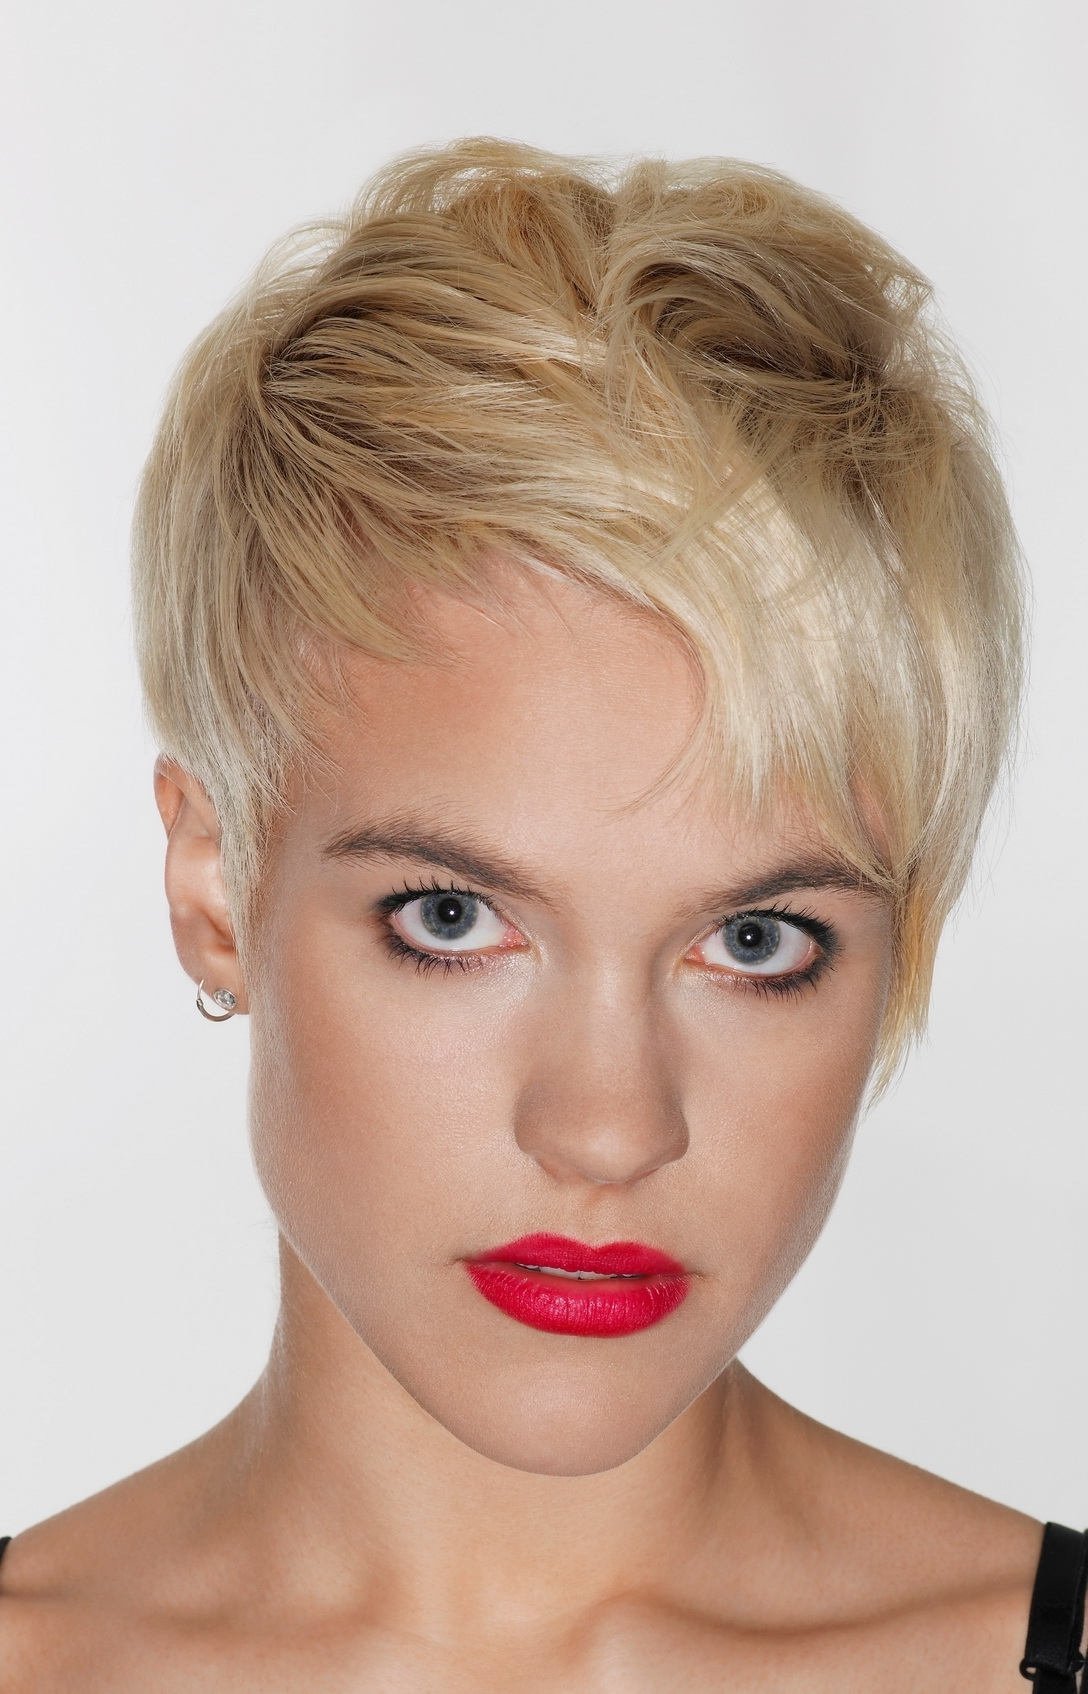 Layered Pixie Haircut For Inverted Triangle And Heart Faces 2018 For Best And Newest Pixie Hairstyles For Heart Shaped Face (View 9 of 15)